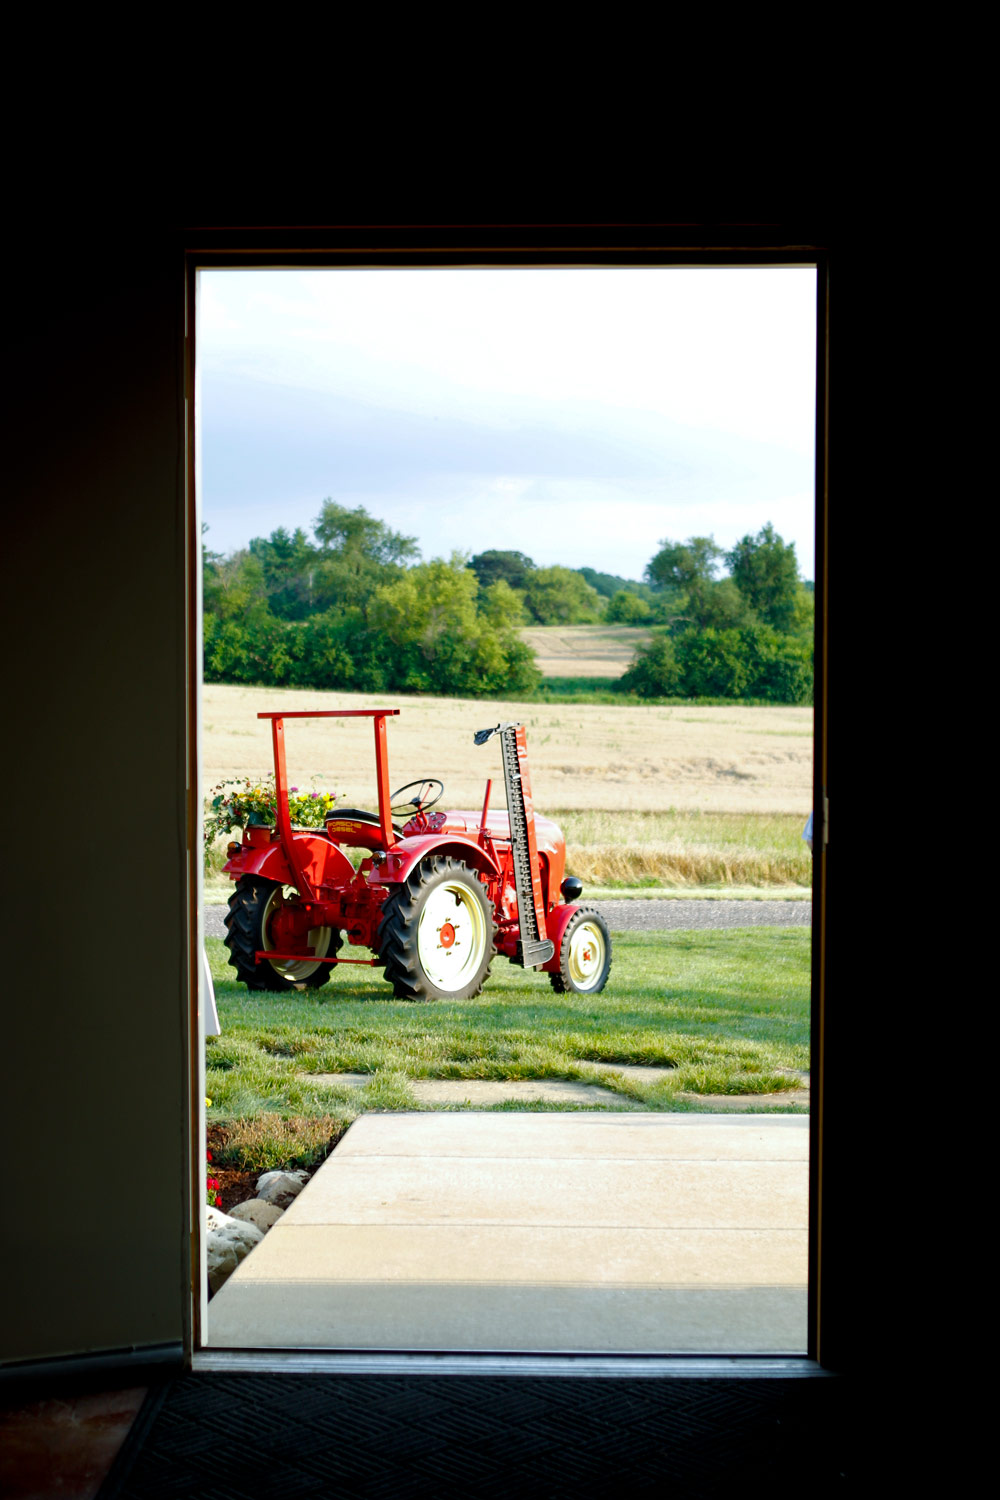 event-photographer-madison-wi-dane-county-gala-fundraiser-ruthie-hauge-photography-farm-to-table 15.jpg